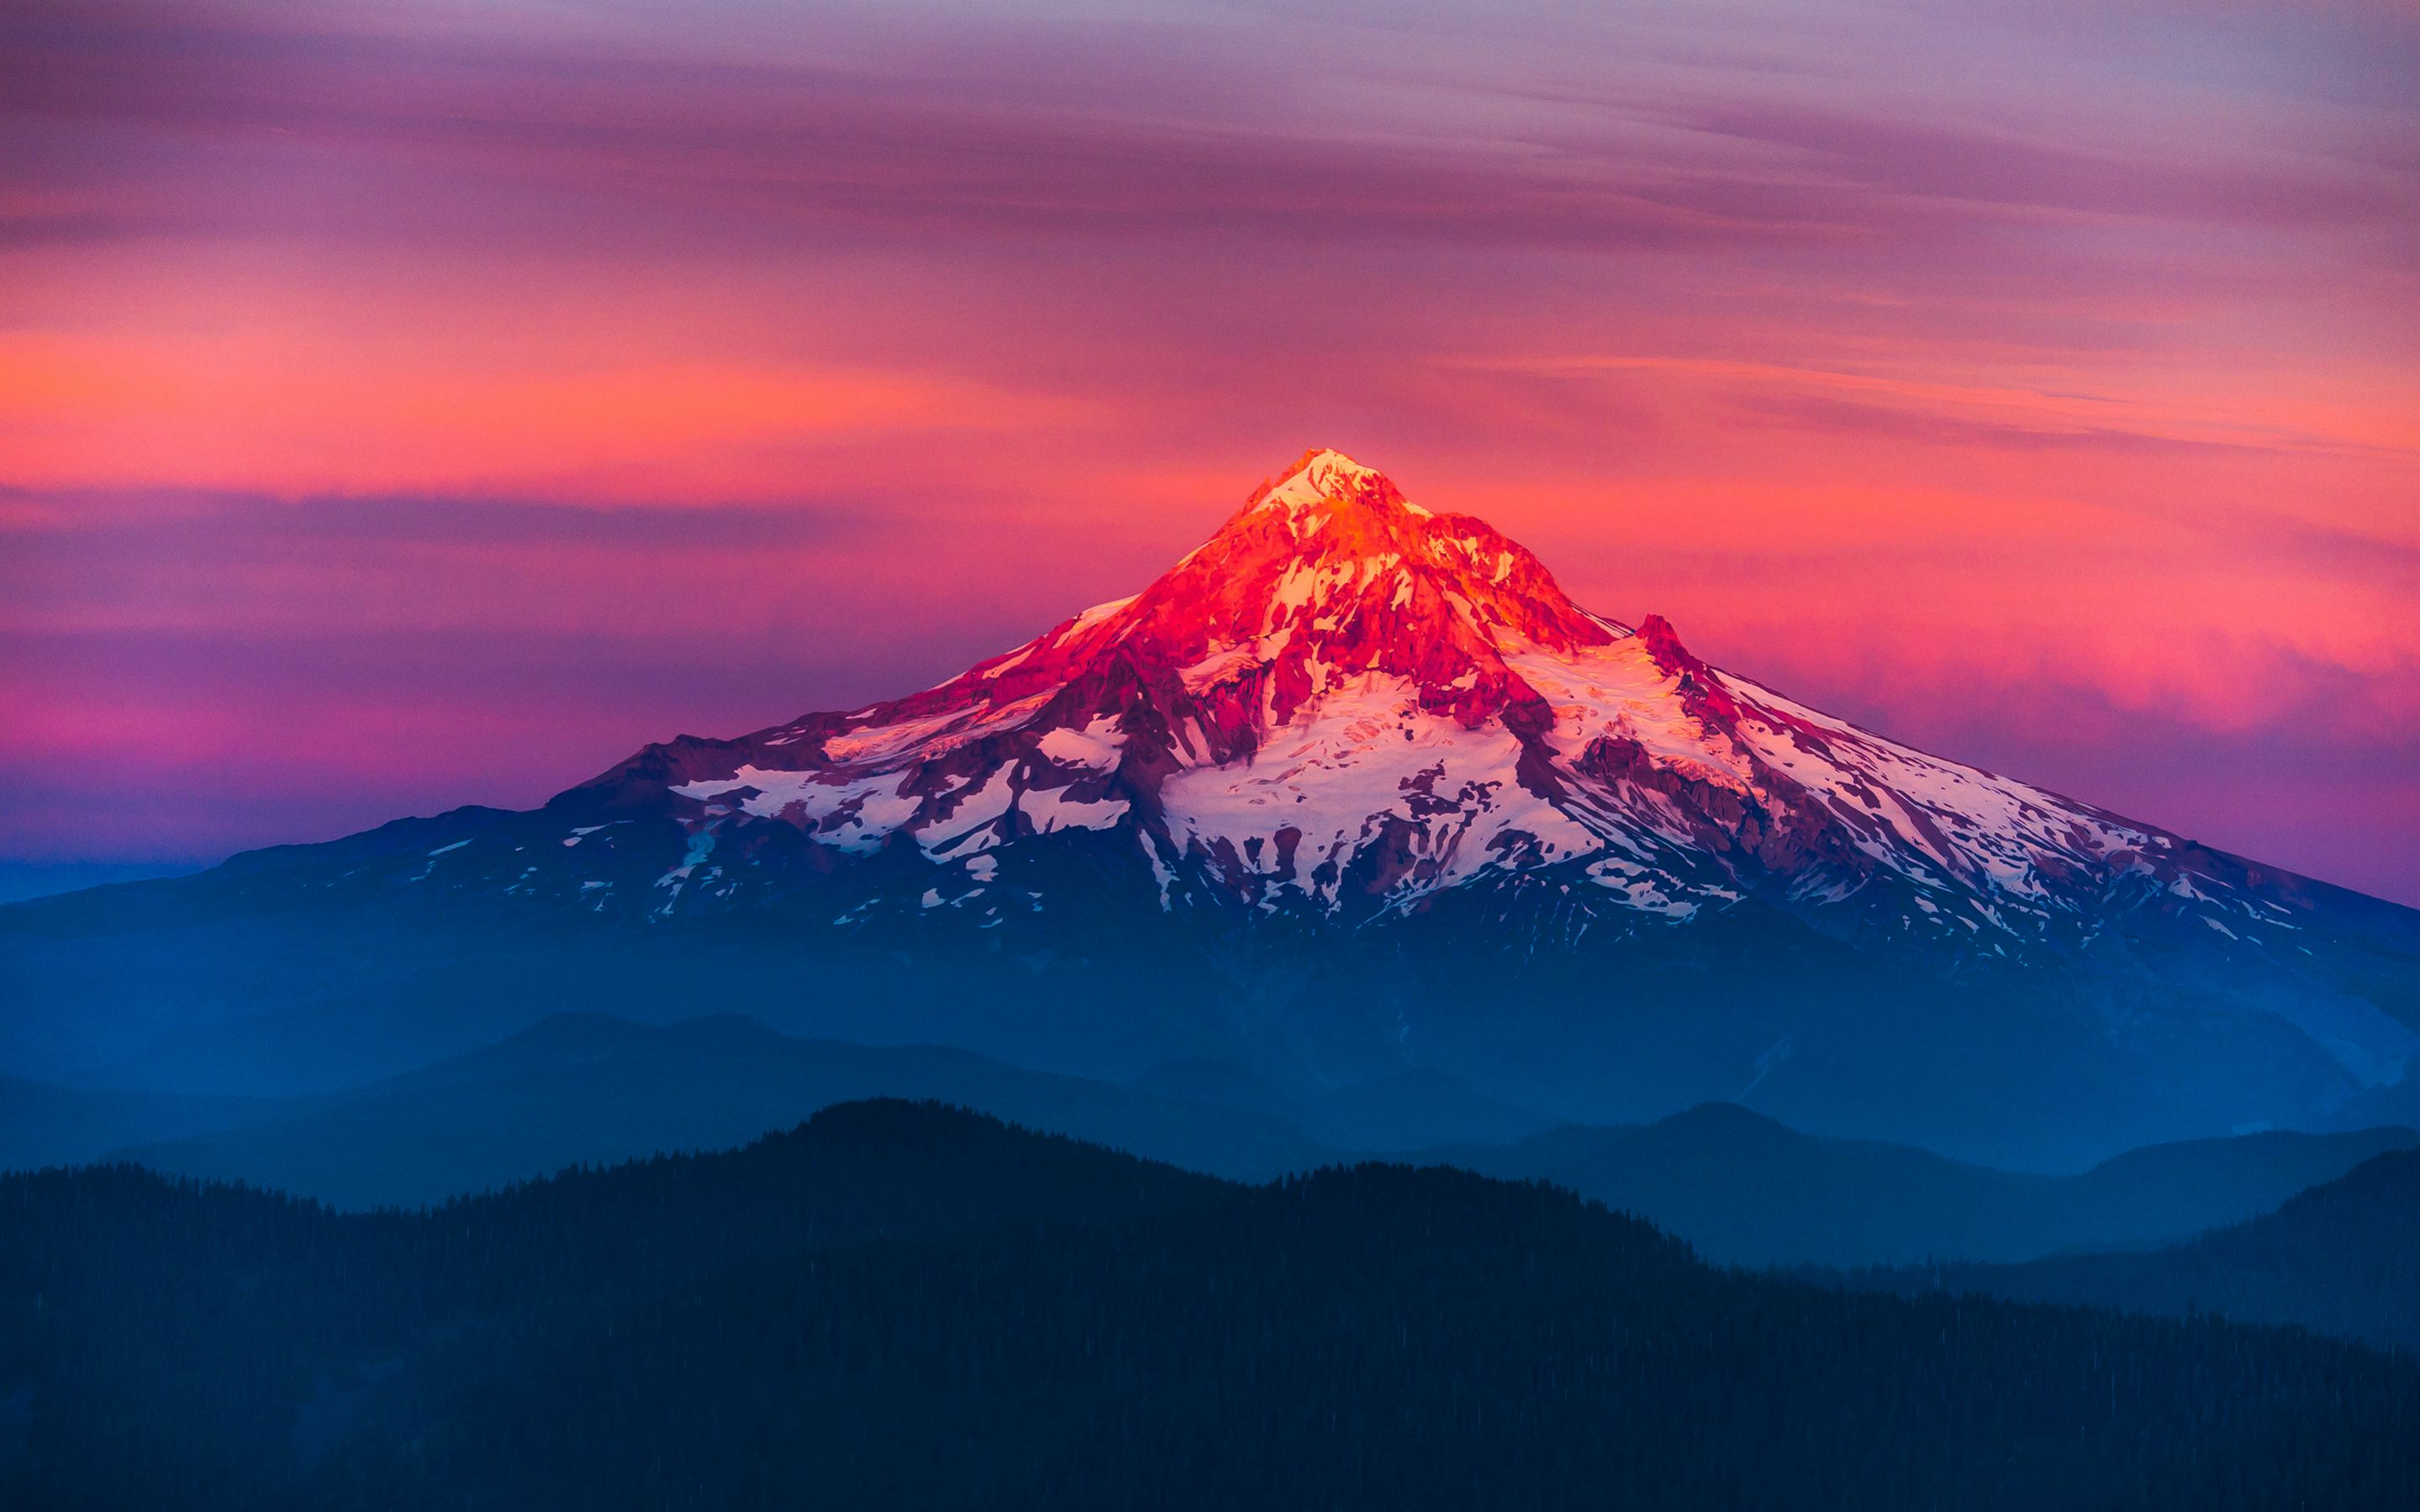 20-Awesome-Mountains-Wallpapers-2